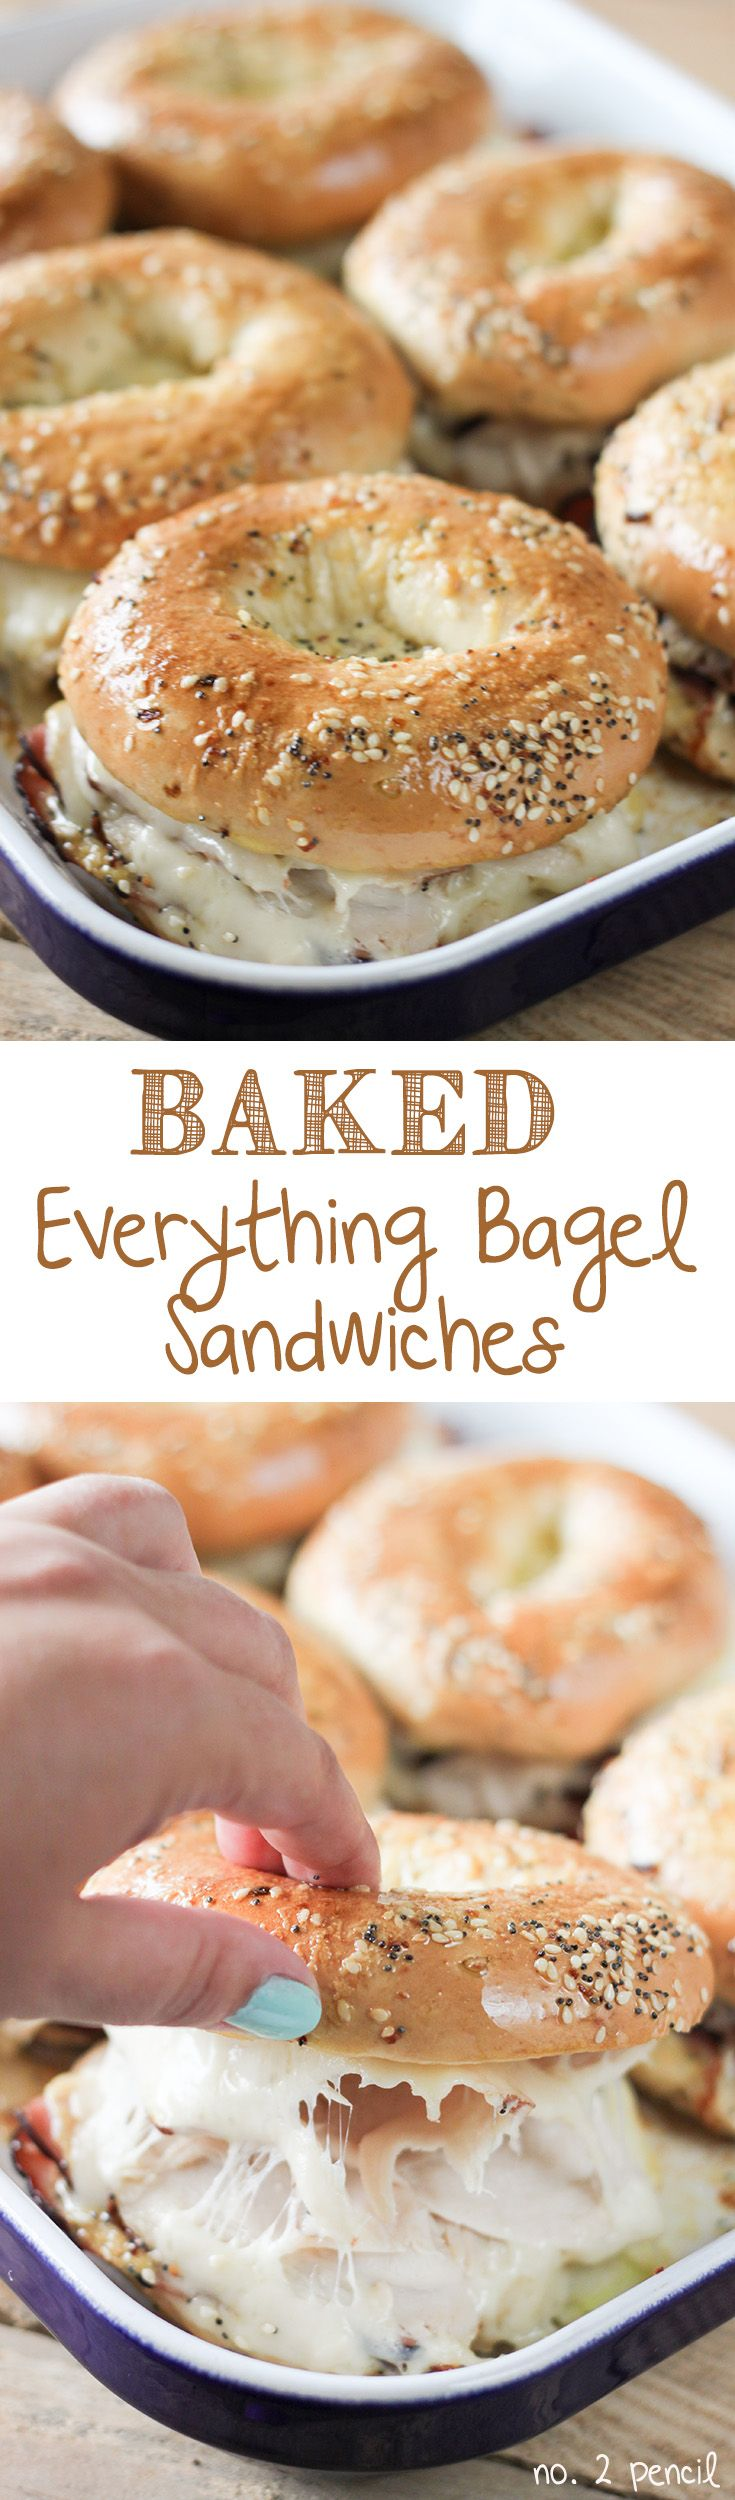 Baked Everything Bagel Sandwiches: This sandwich is one you'll be craving over and over: ham, turkey and Swiss cheese on top of a warm-and-toasty Thomas' Everything Bagel. Shout out to Number 2 Pencil for the recipe!